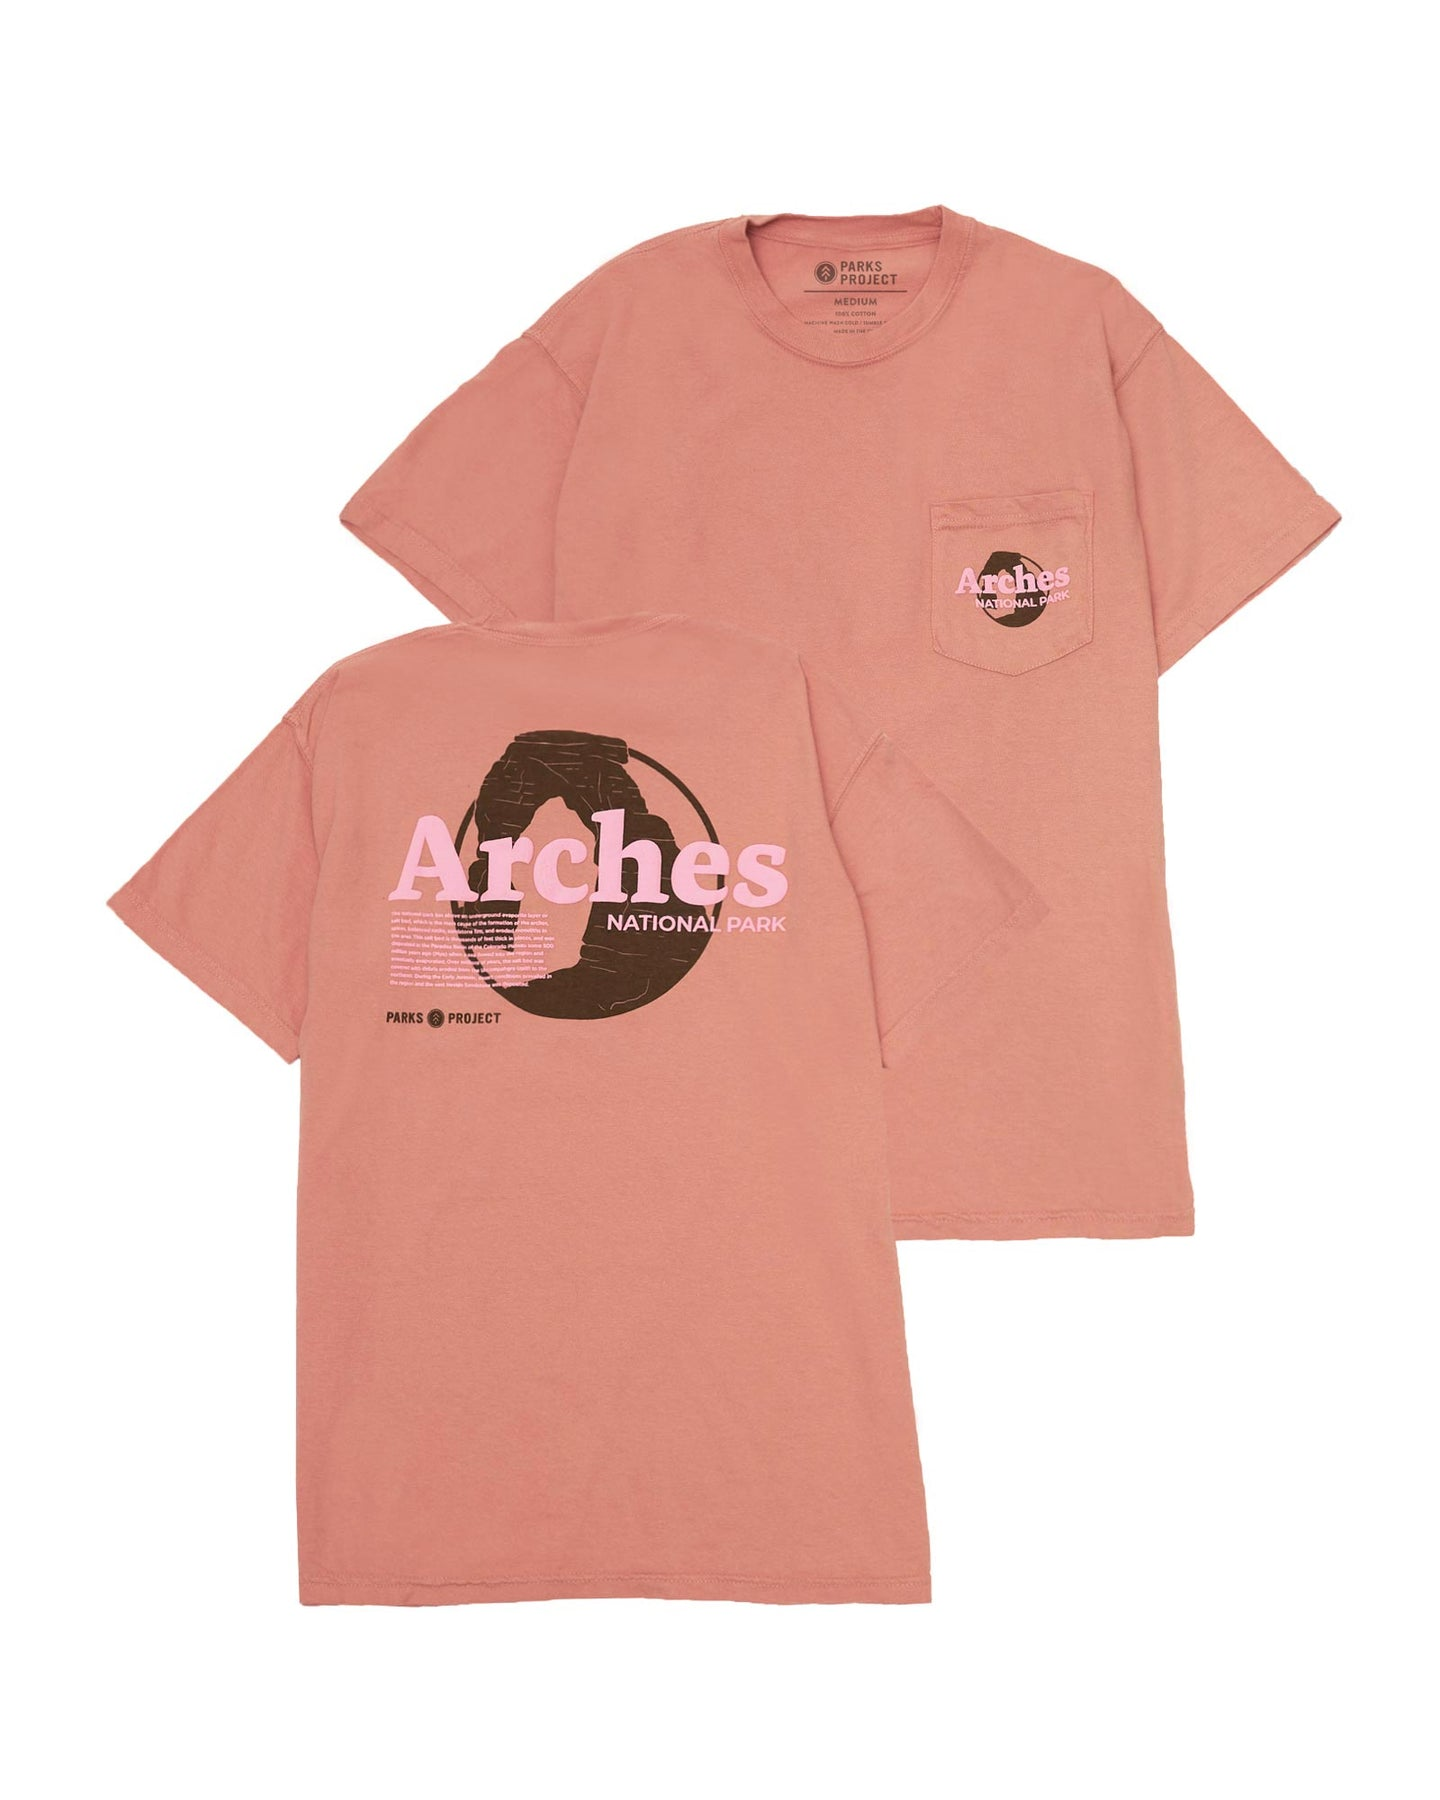 PARKS PROJECT Arches Puff Print Pocket Tee | AS001002